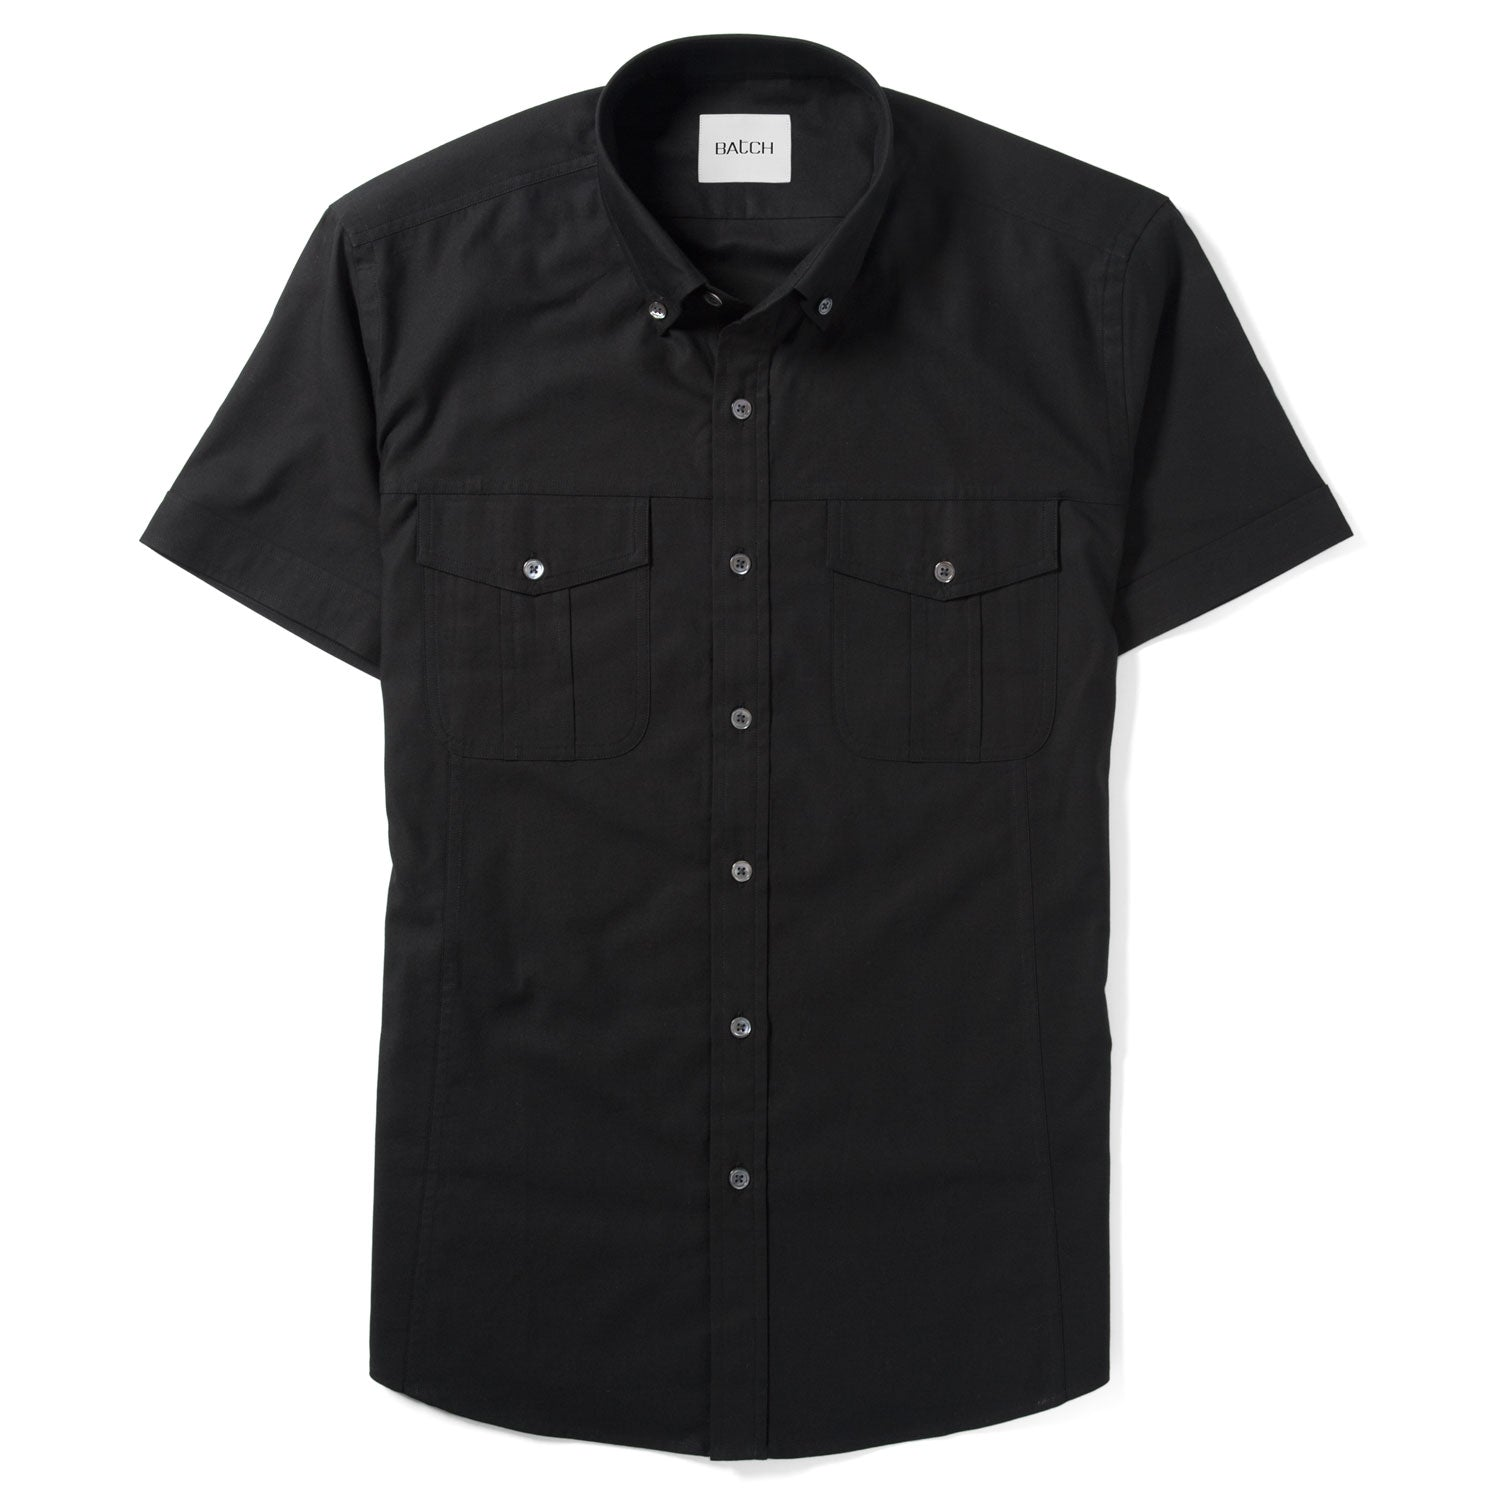 Editor Short Sleeve Utility Shirt – Pure Black Mercerized Cotton